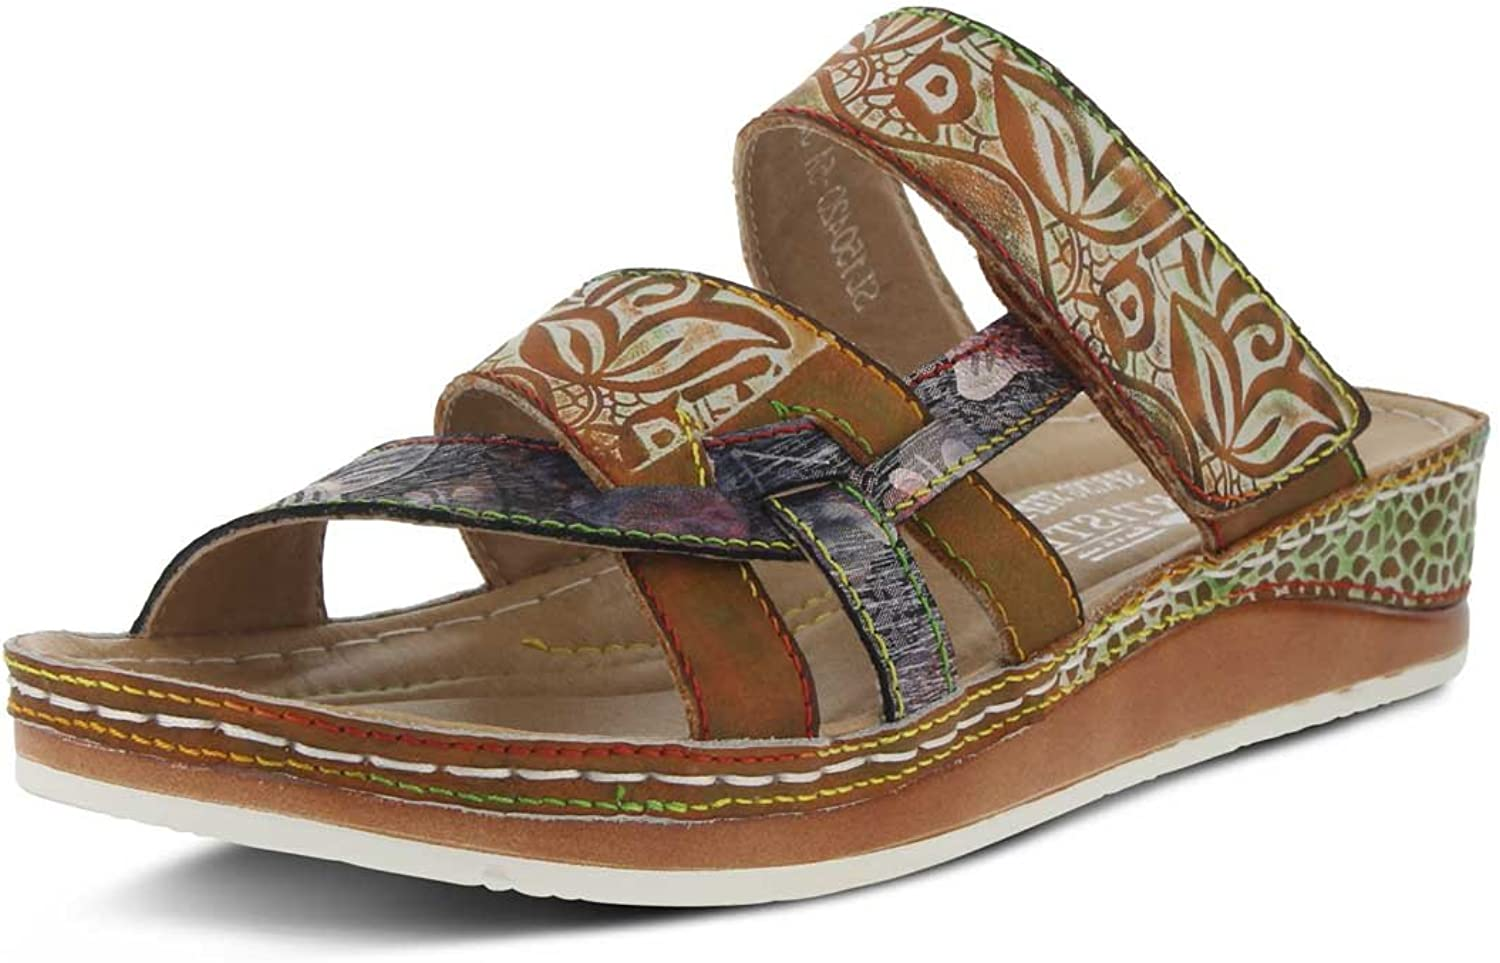 Women's L'artiste by Springstep, Caiman Slide Sandals